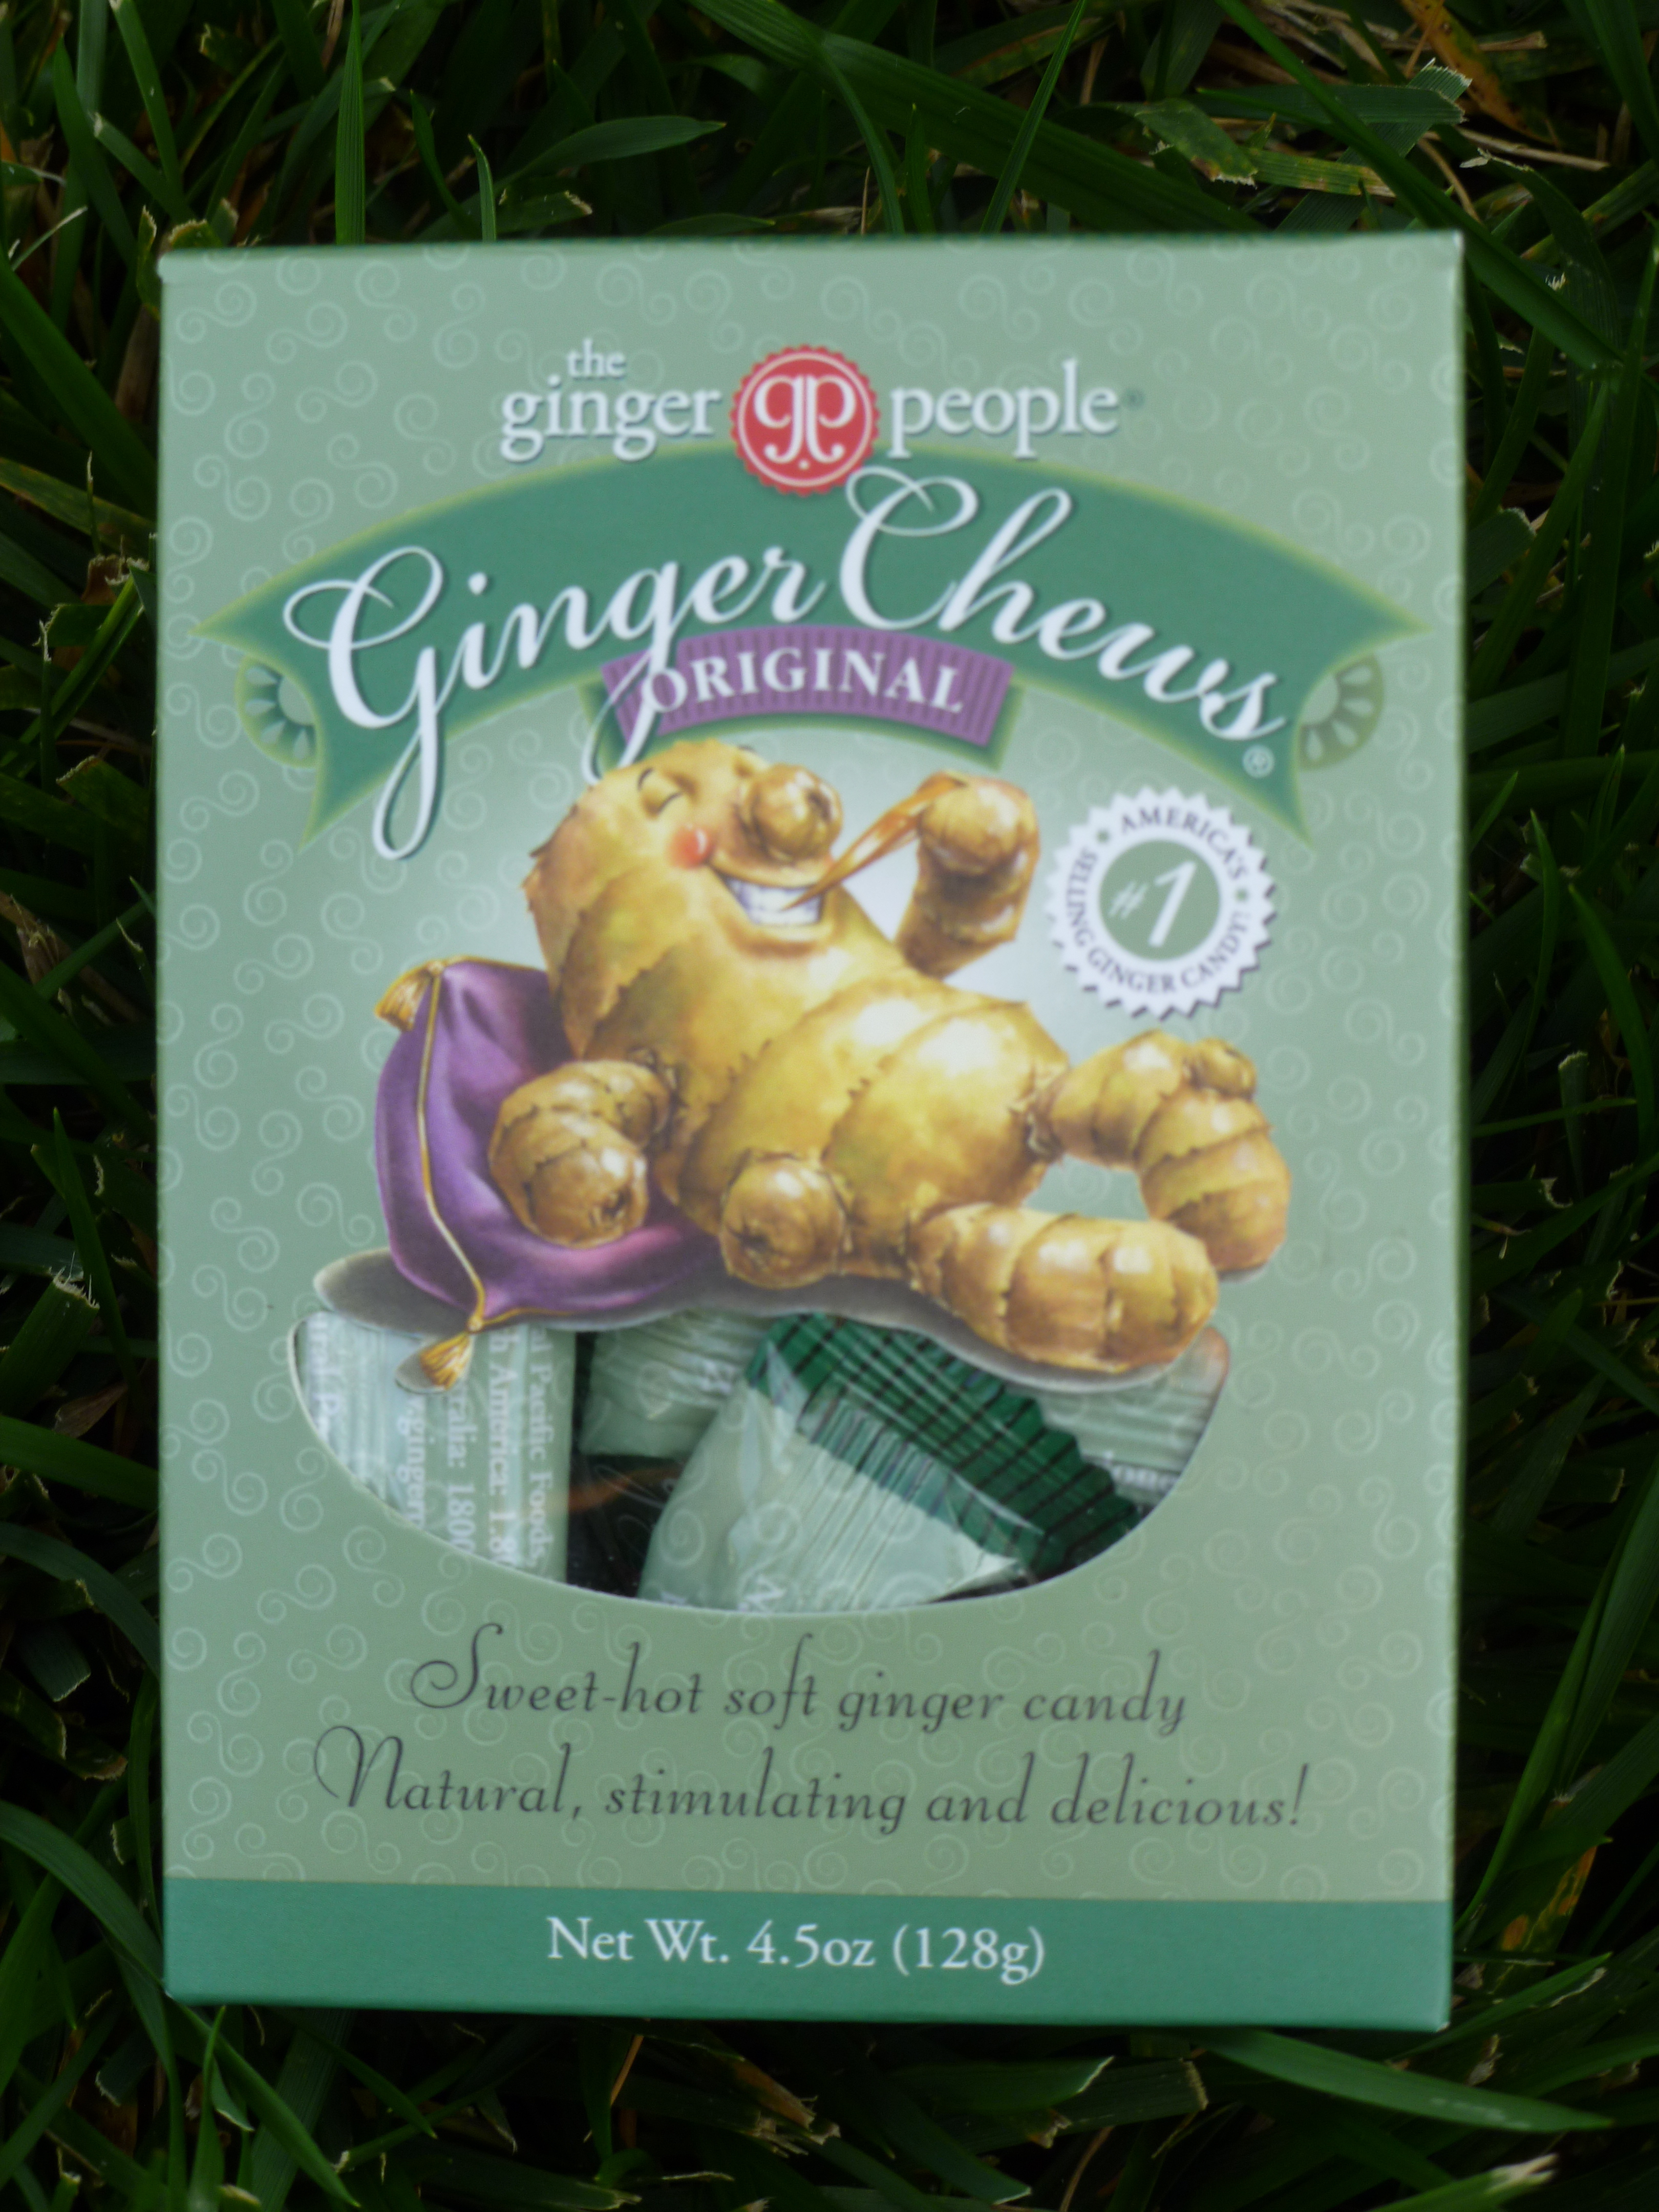 Ginger chews for chemotherapy nausea for breast cancer